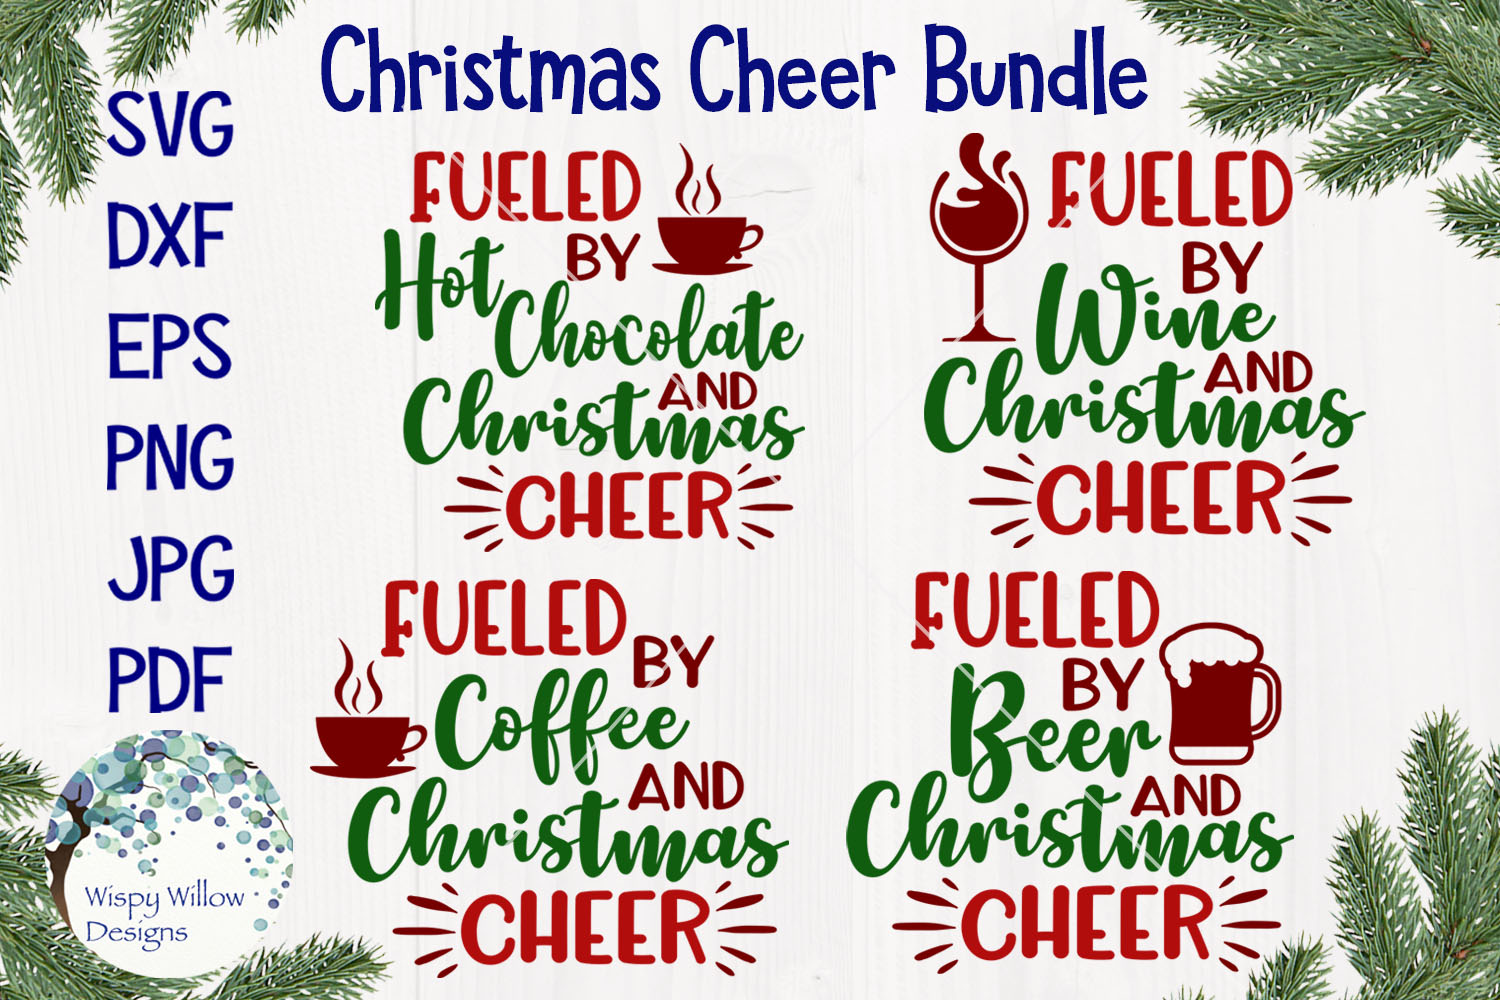 Fueled By Christmas Cheer | Christmas SVG Bundle example image 1